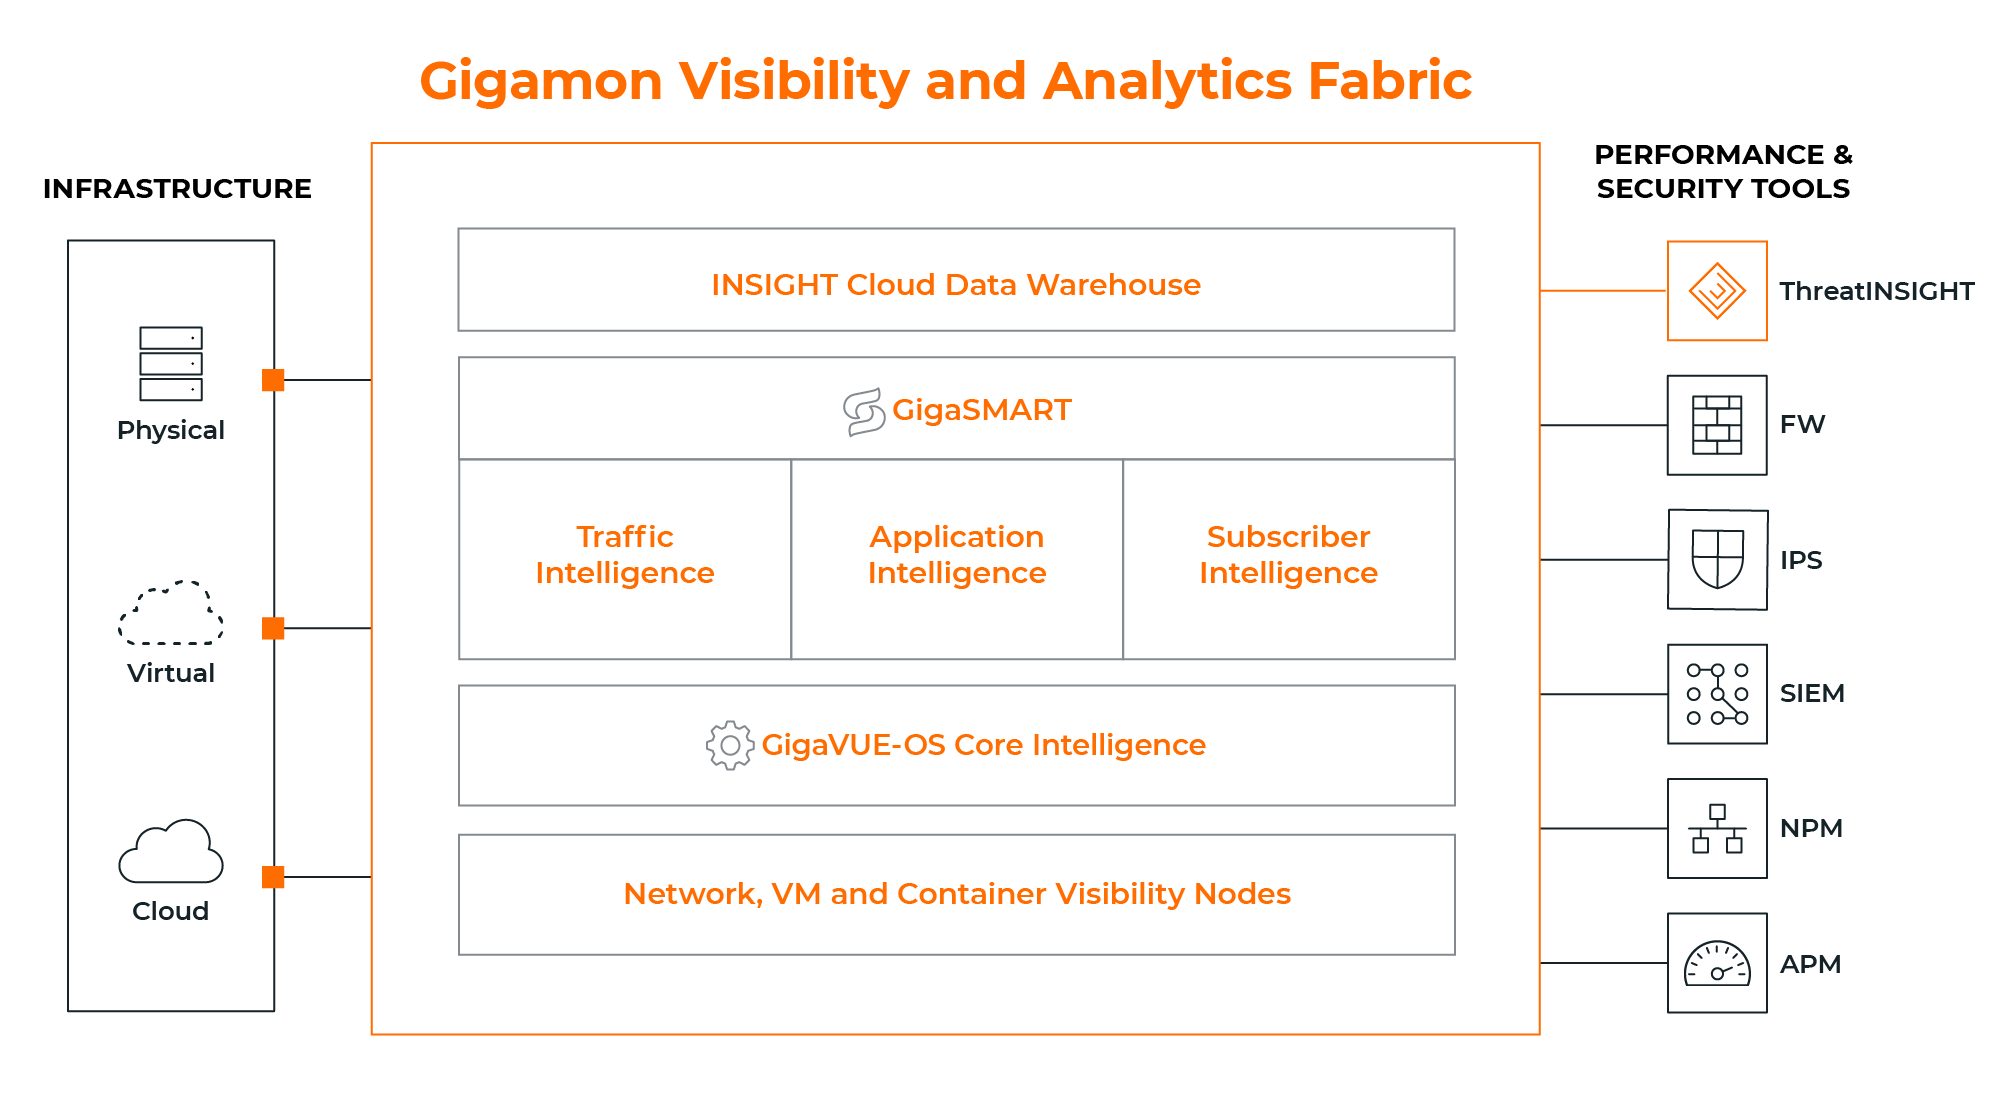 The Gigamon Visibility and Analytics Fabric collects data-in-transit across physical, virtual and cloud infrastructures and transforms it – optimizing, decrypting, securing – before distributing to your tools.